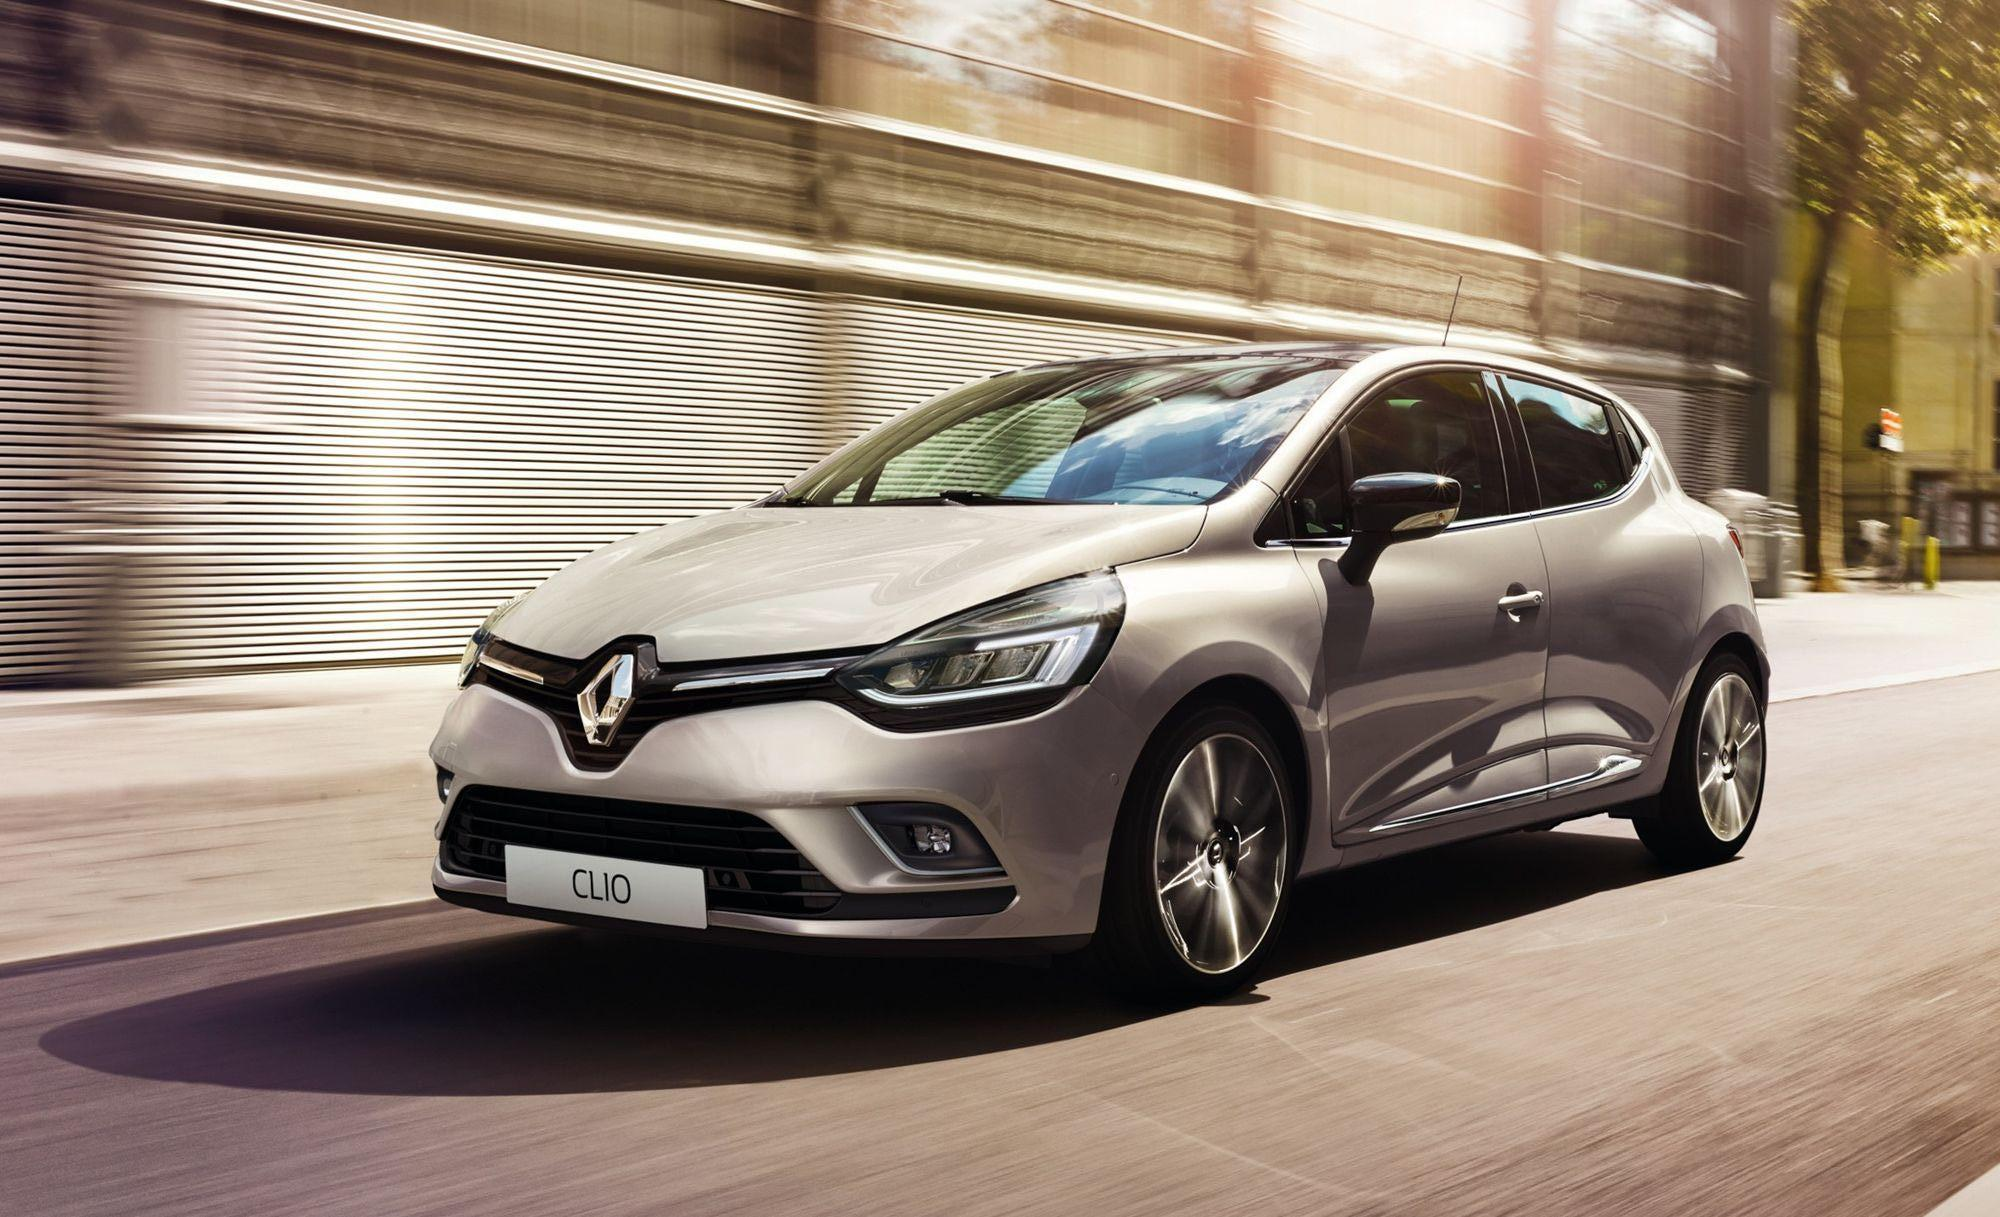 2017 RENAULT CLIO MOTION WALLPAPERS